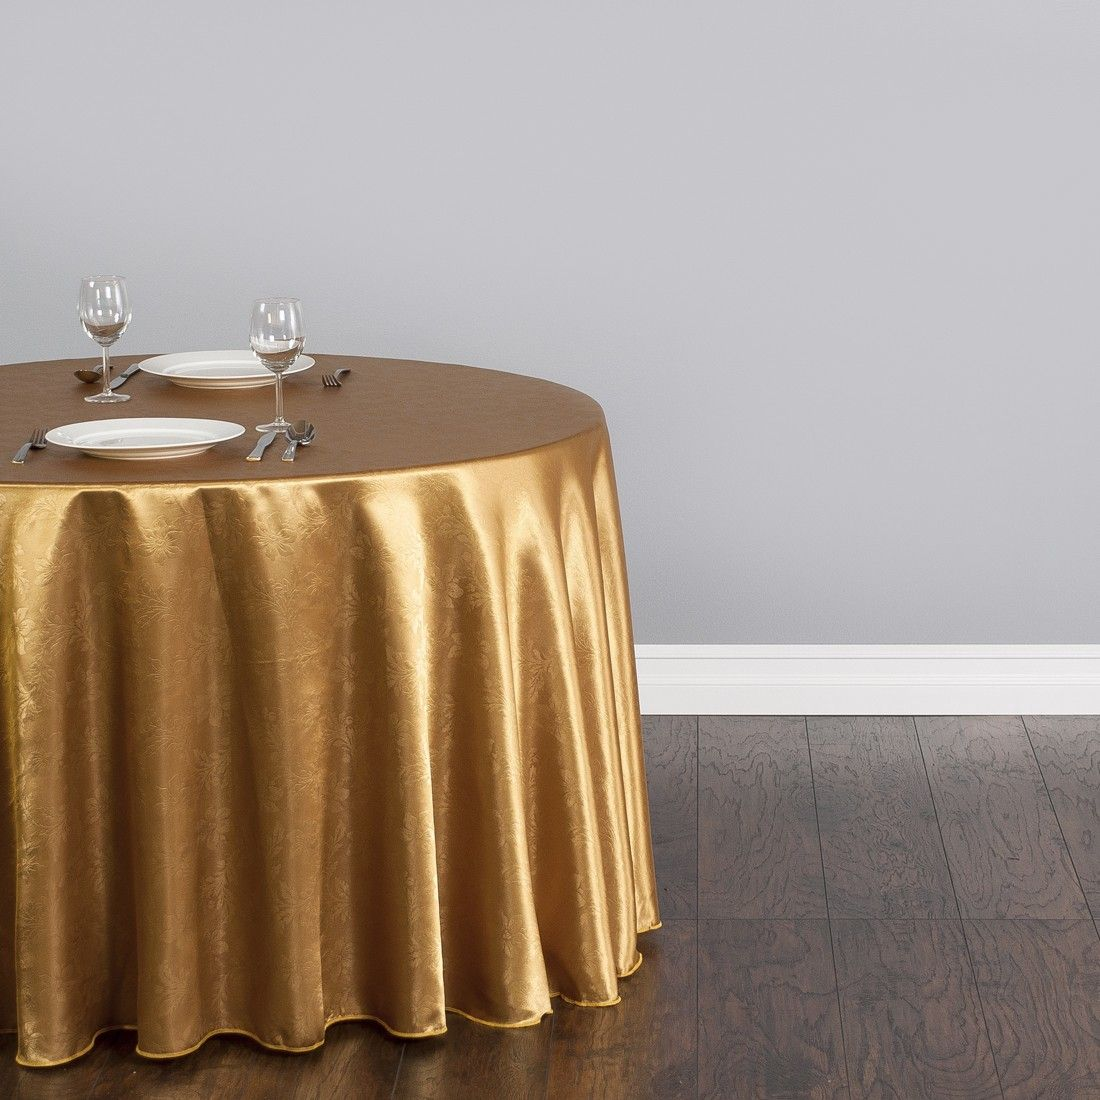 108 in. Round Satin Tablecloth White